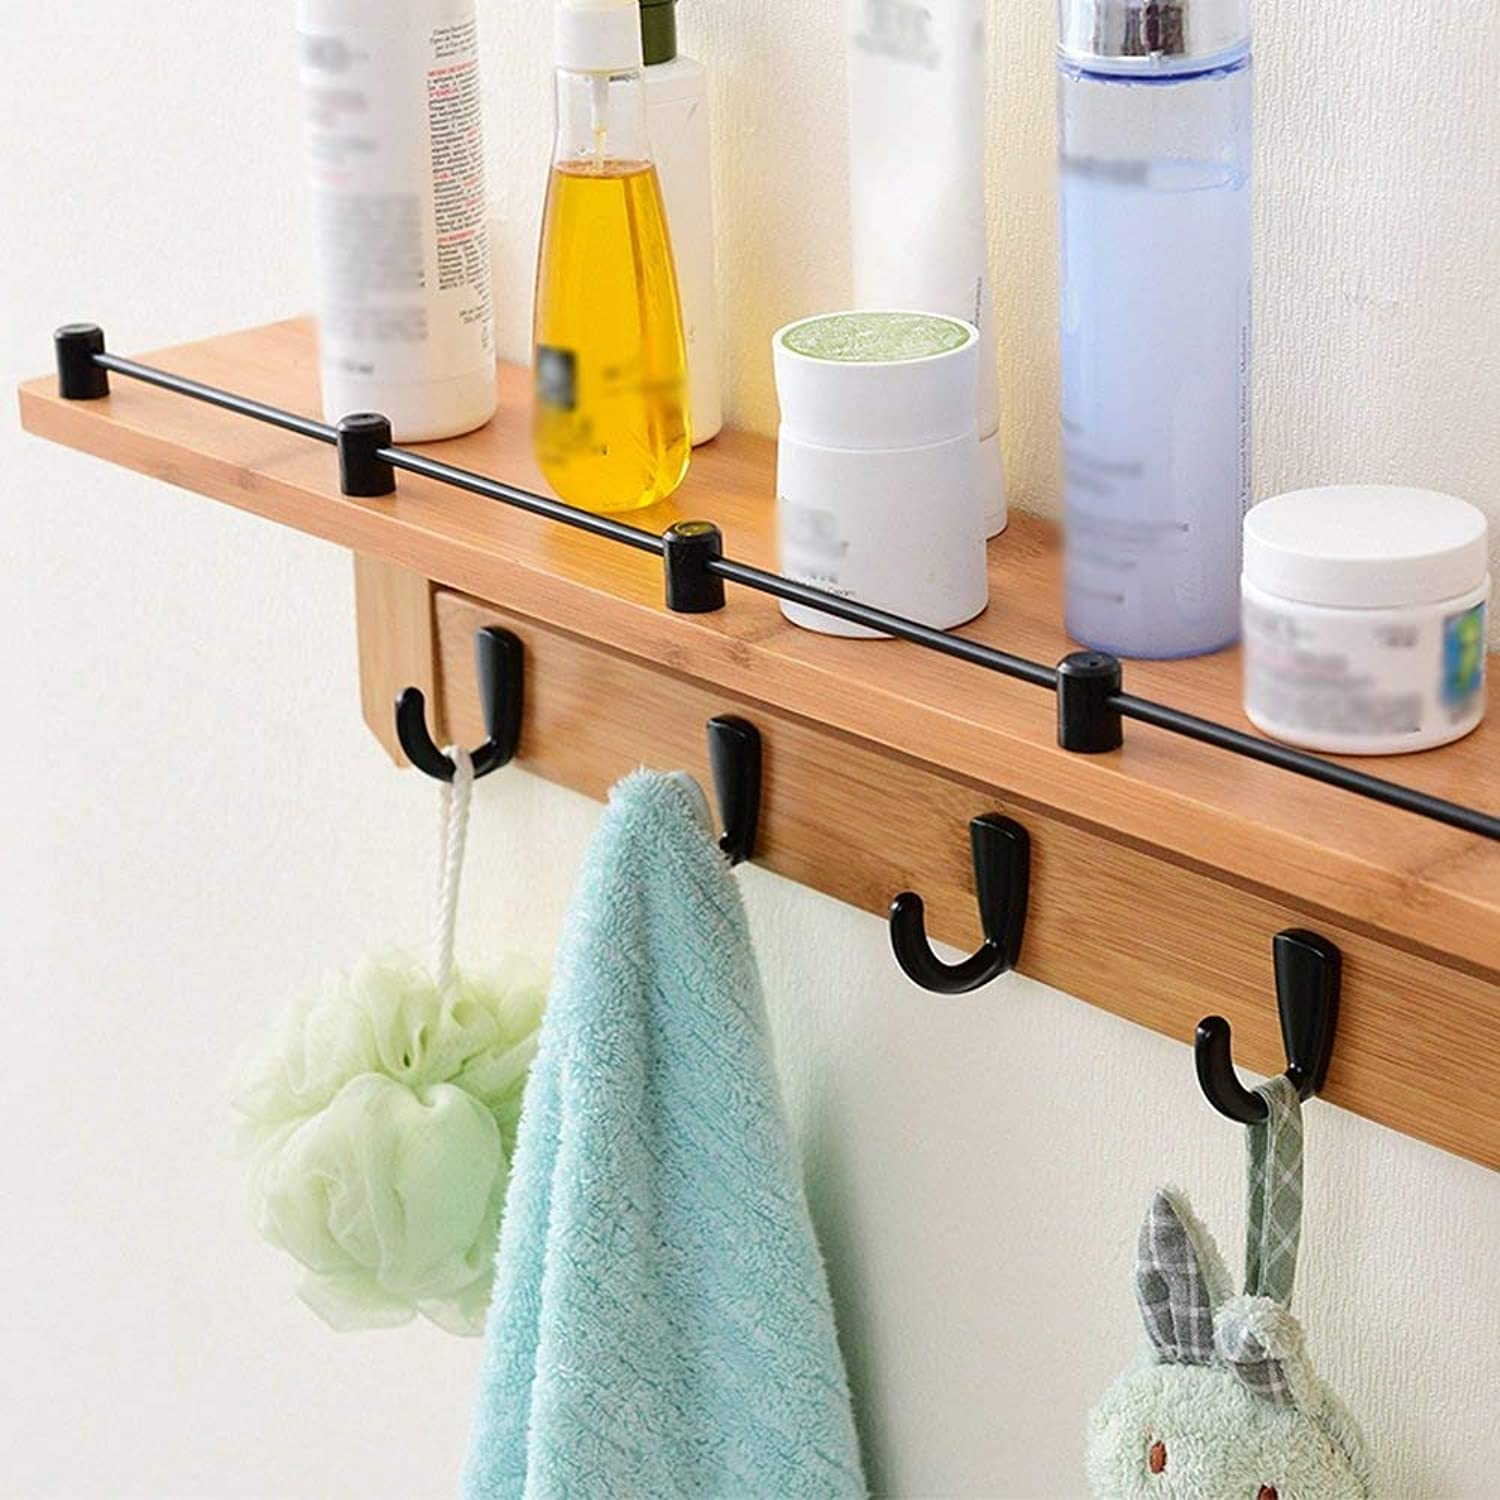 XQY Coat Racks Clothes Stand Clothes Hook Solid Wood Wall Shelves Hook up Stable and Durable,Clothes Tree